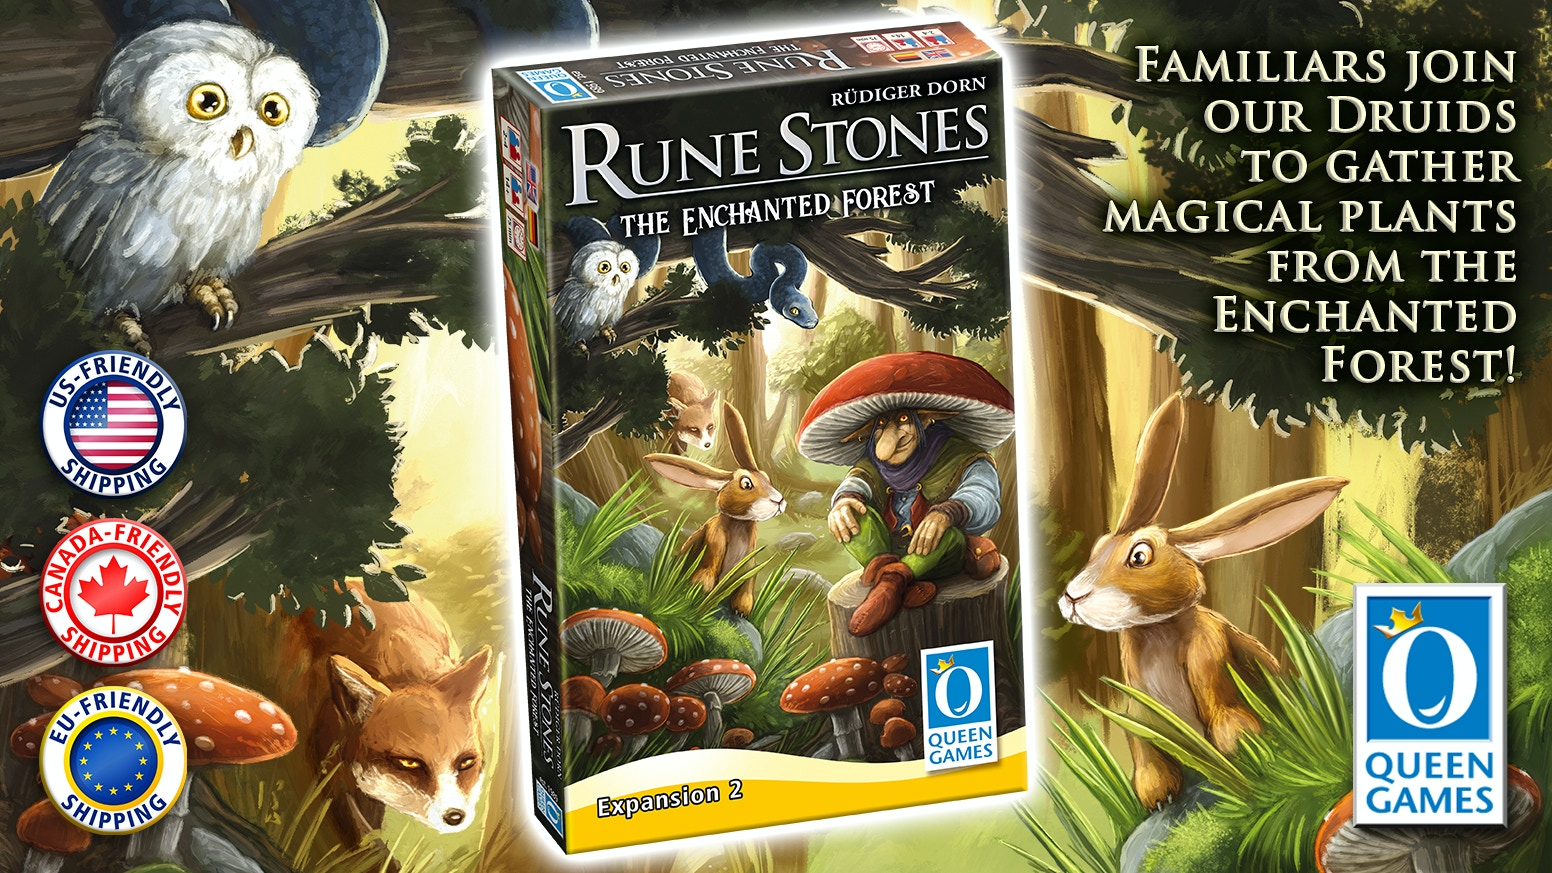 The second expansion to Rune Stones includes 8 new rune stones for new strategies as well as the Enchanted Forest!